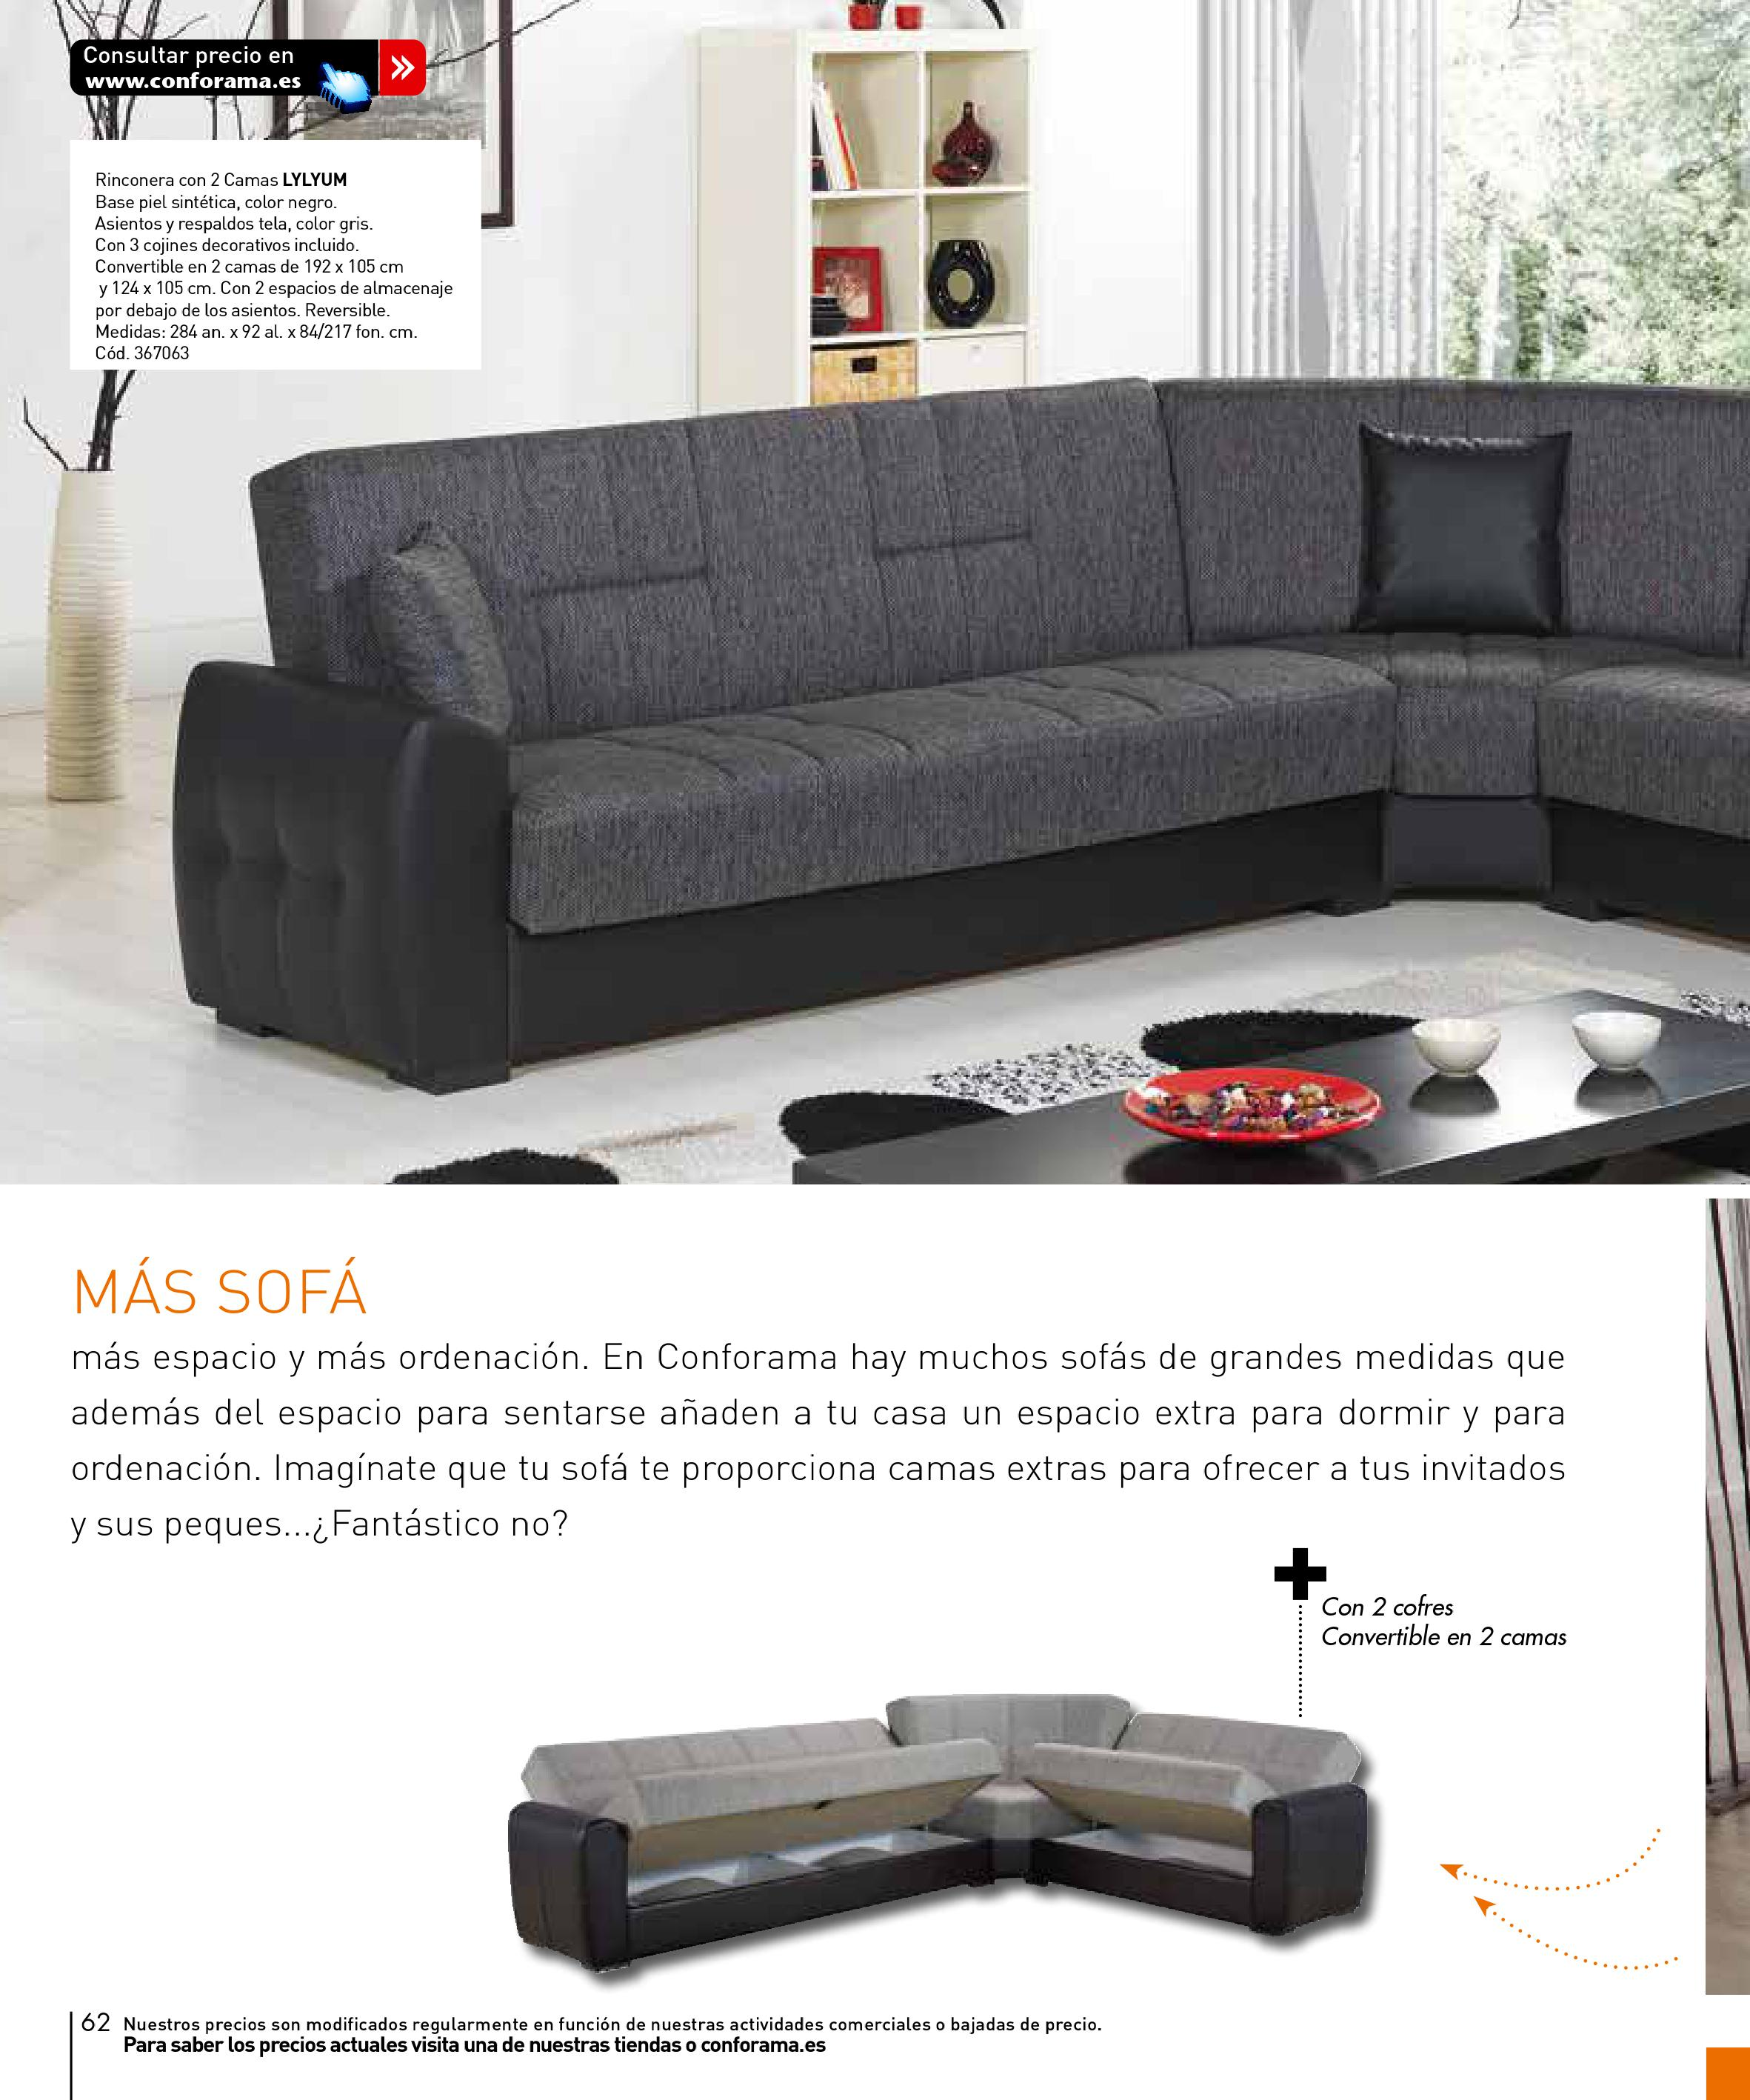 Sofas conforama 201562 for Sofas conforama catalogo